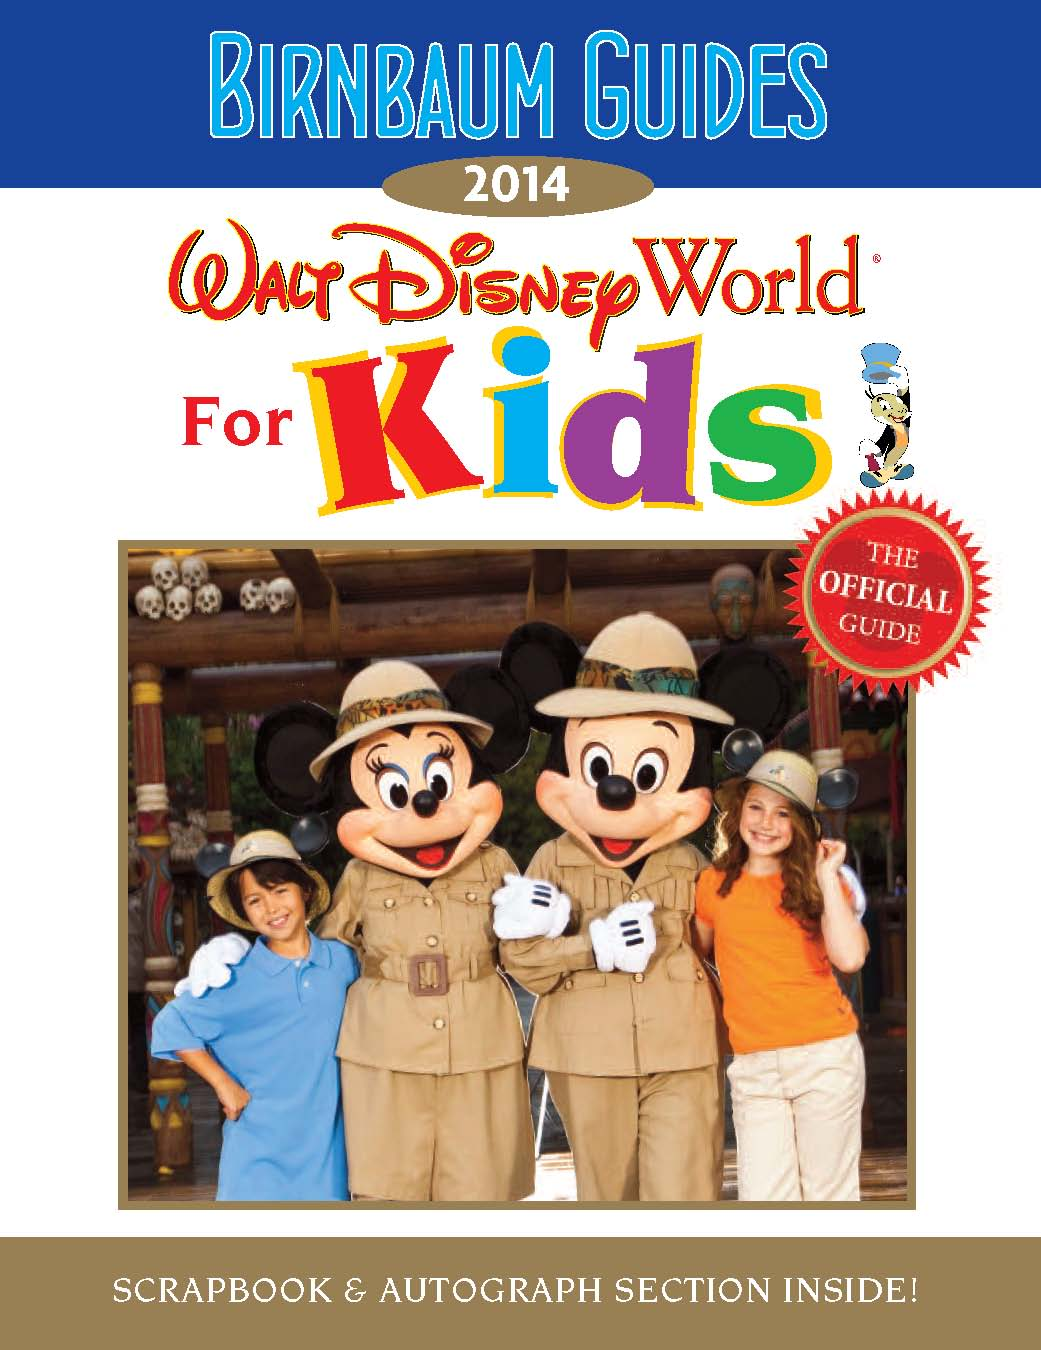 Walt Disney World For Kids: The Official Guide (2014)